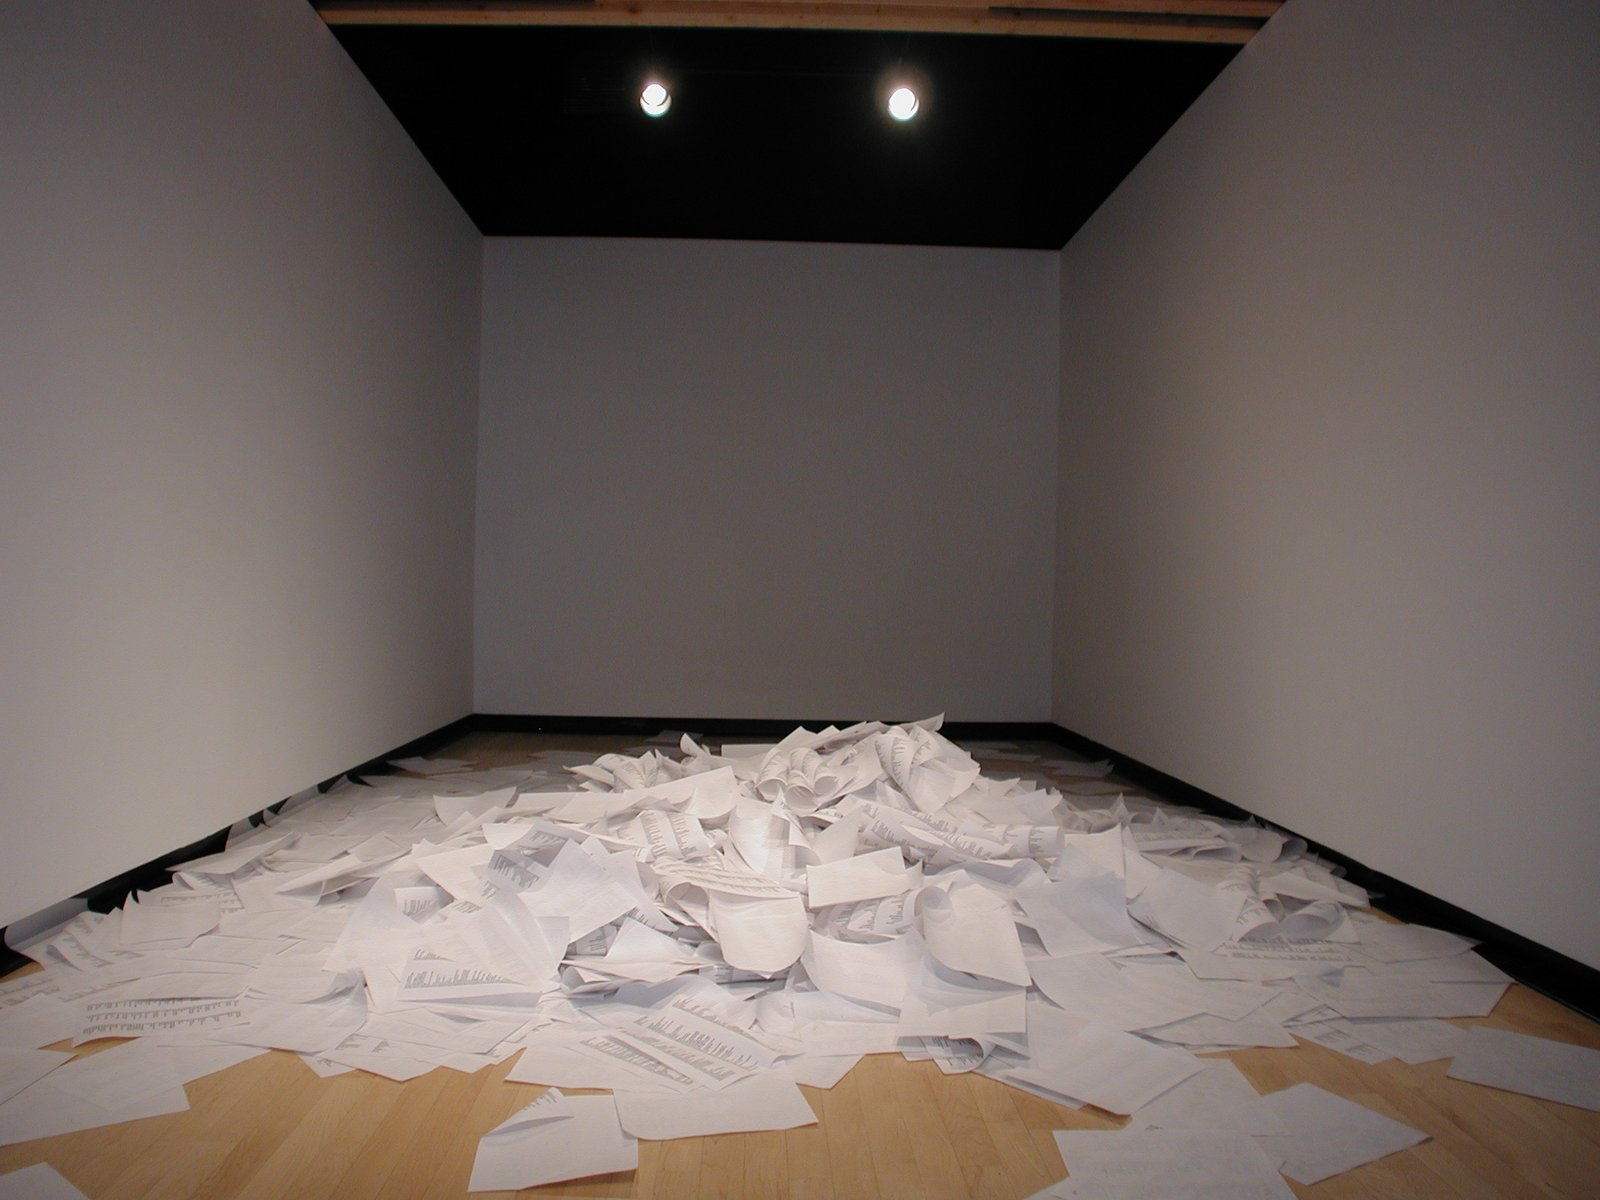 thousands of sheets of paper fallen in a sinusoidal distribution in an art gallery